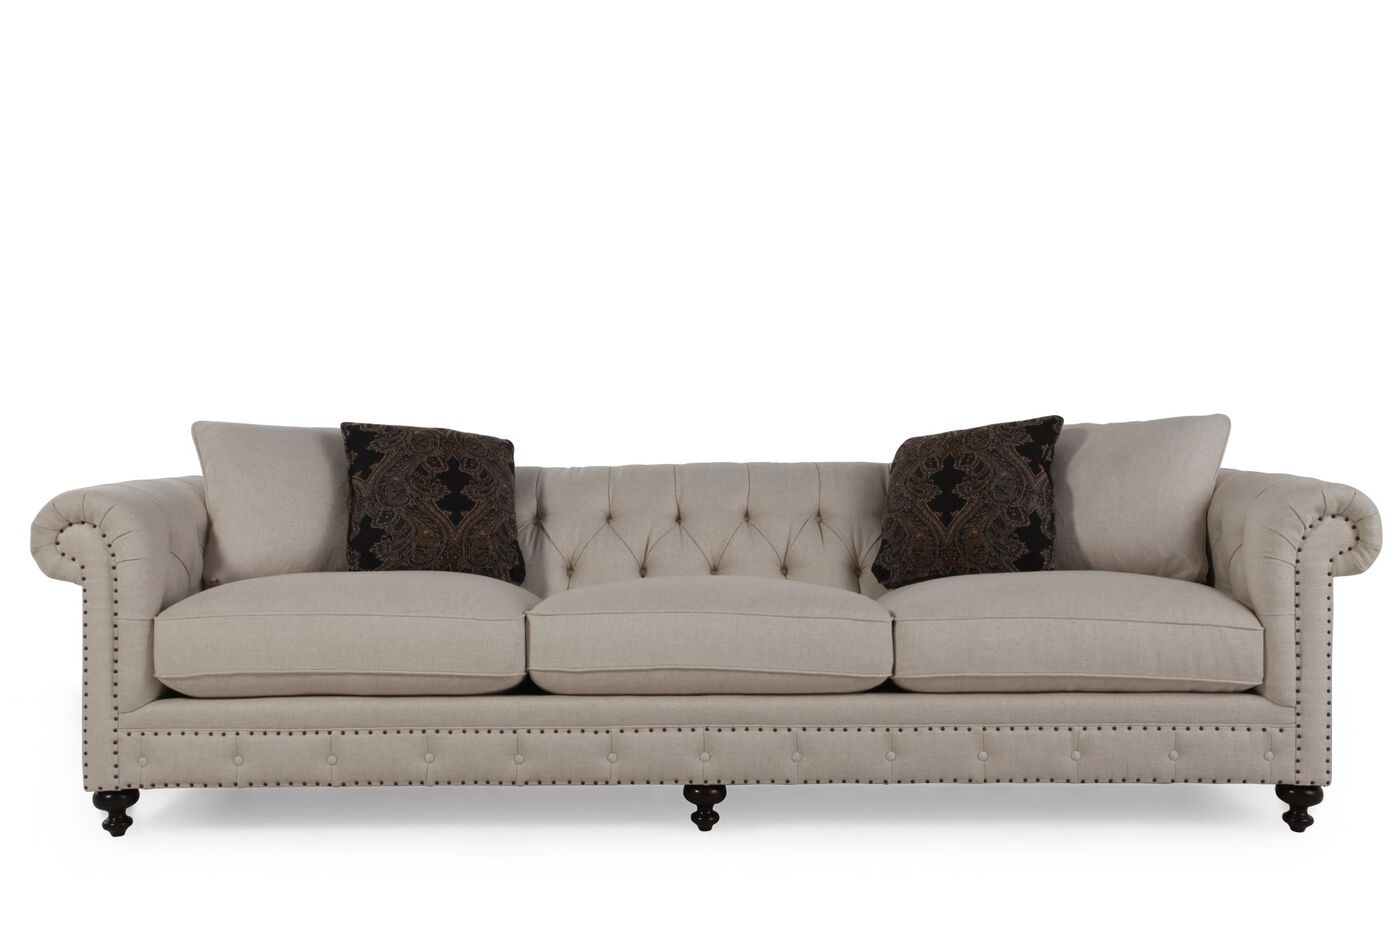 bernhardt riviera large sofa mathis brothers furniture. Black Bedroom Furniture Sets. Home Design Ideas